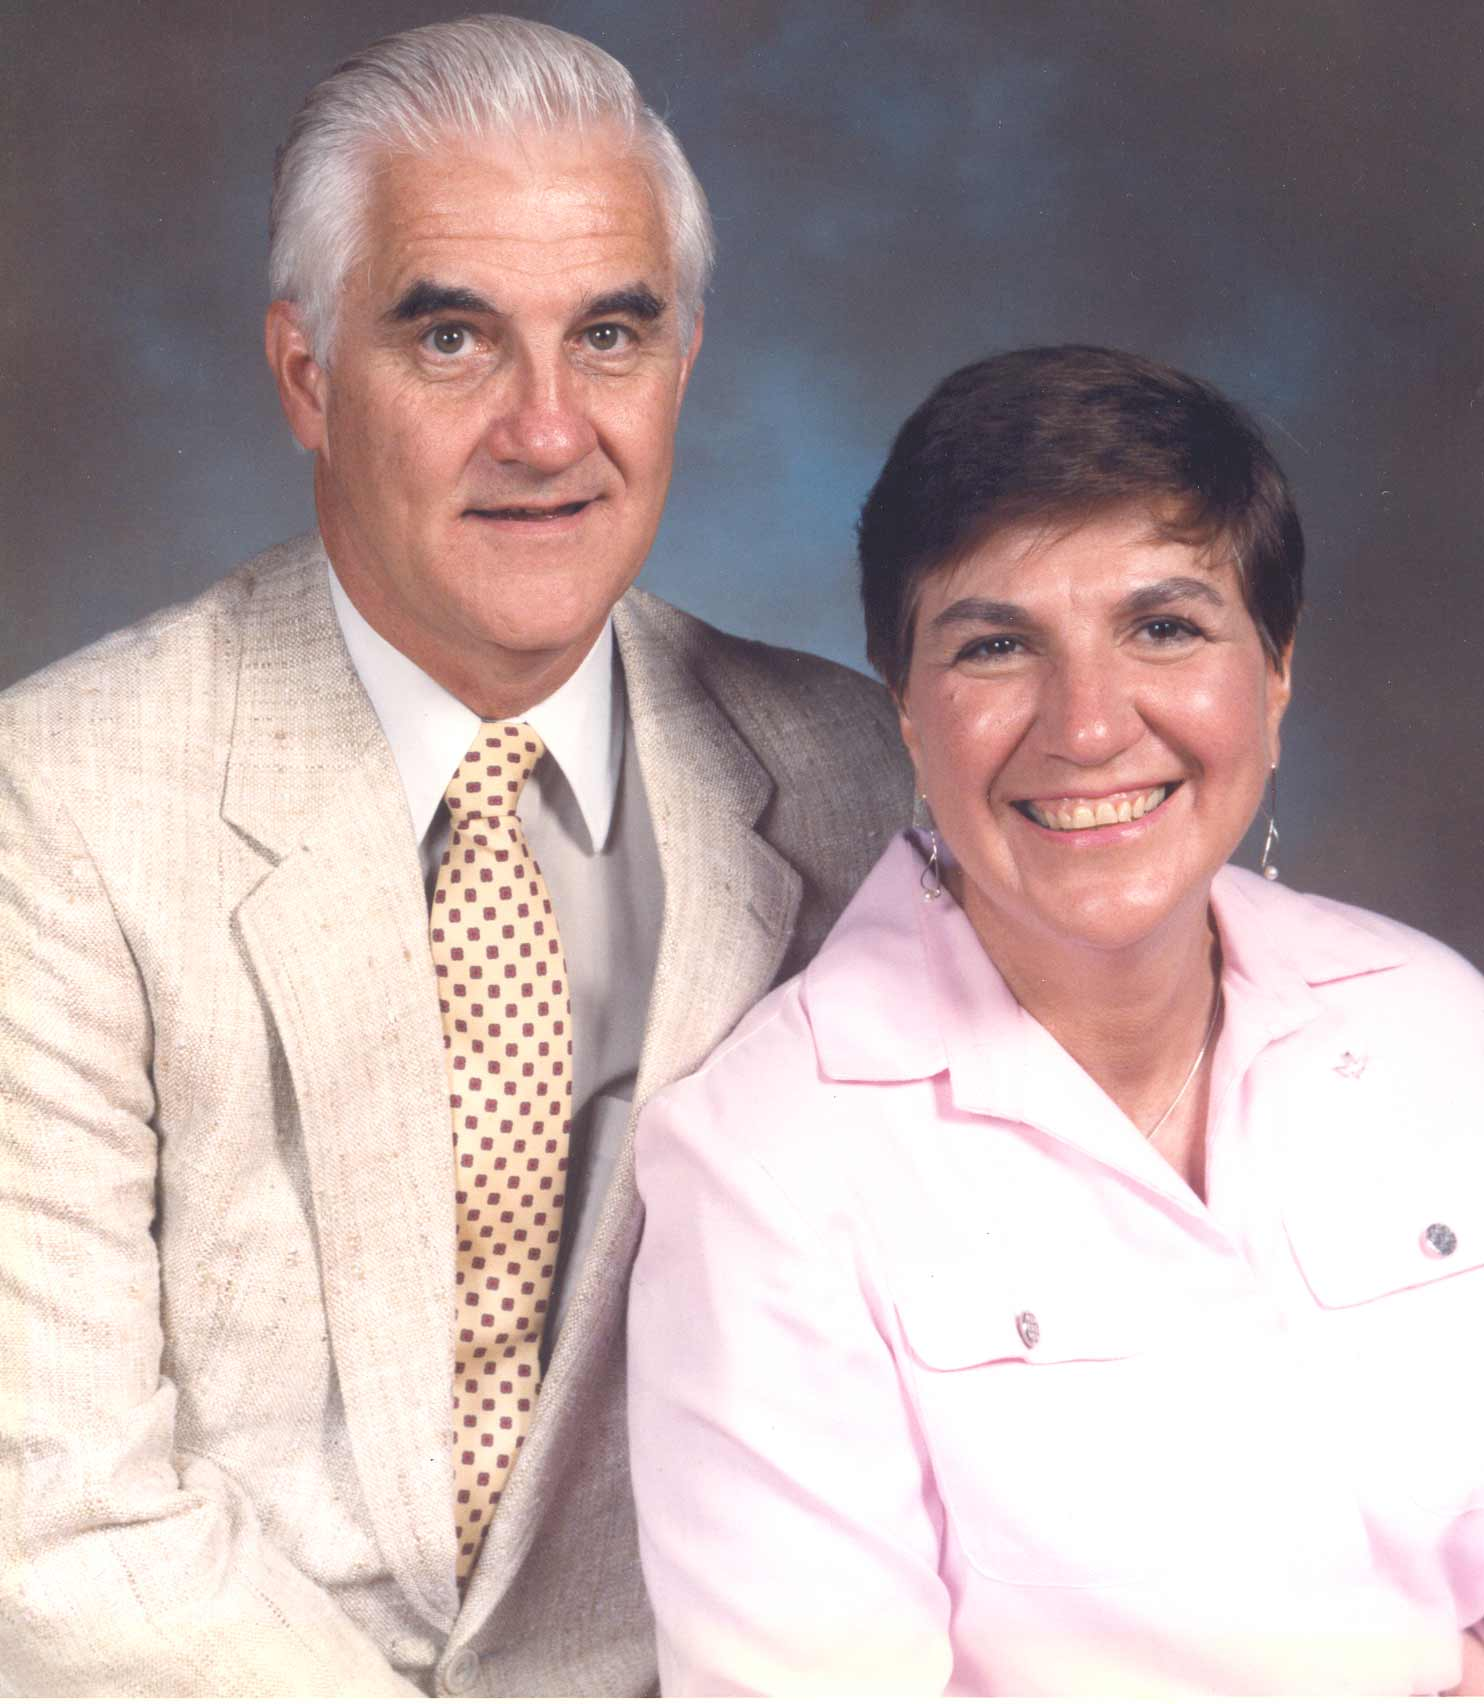 Joe Sweeney with wife Millie